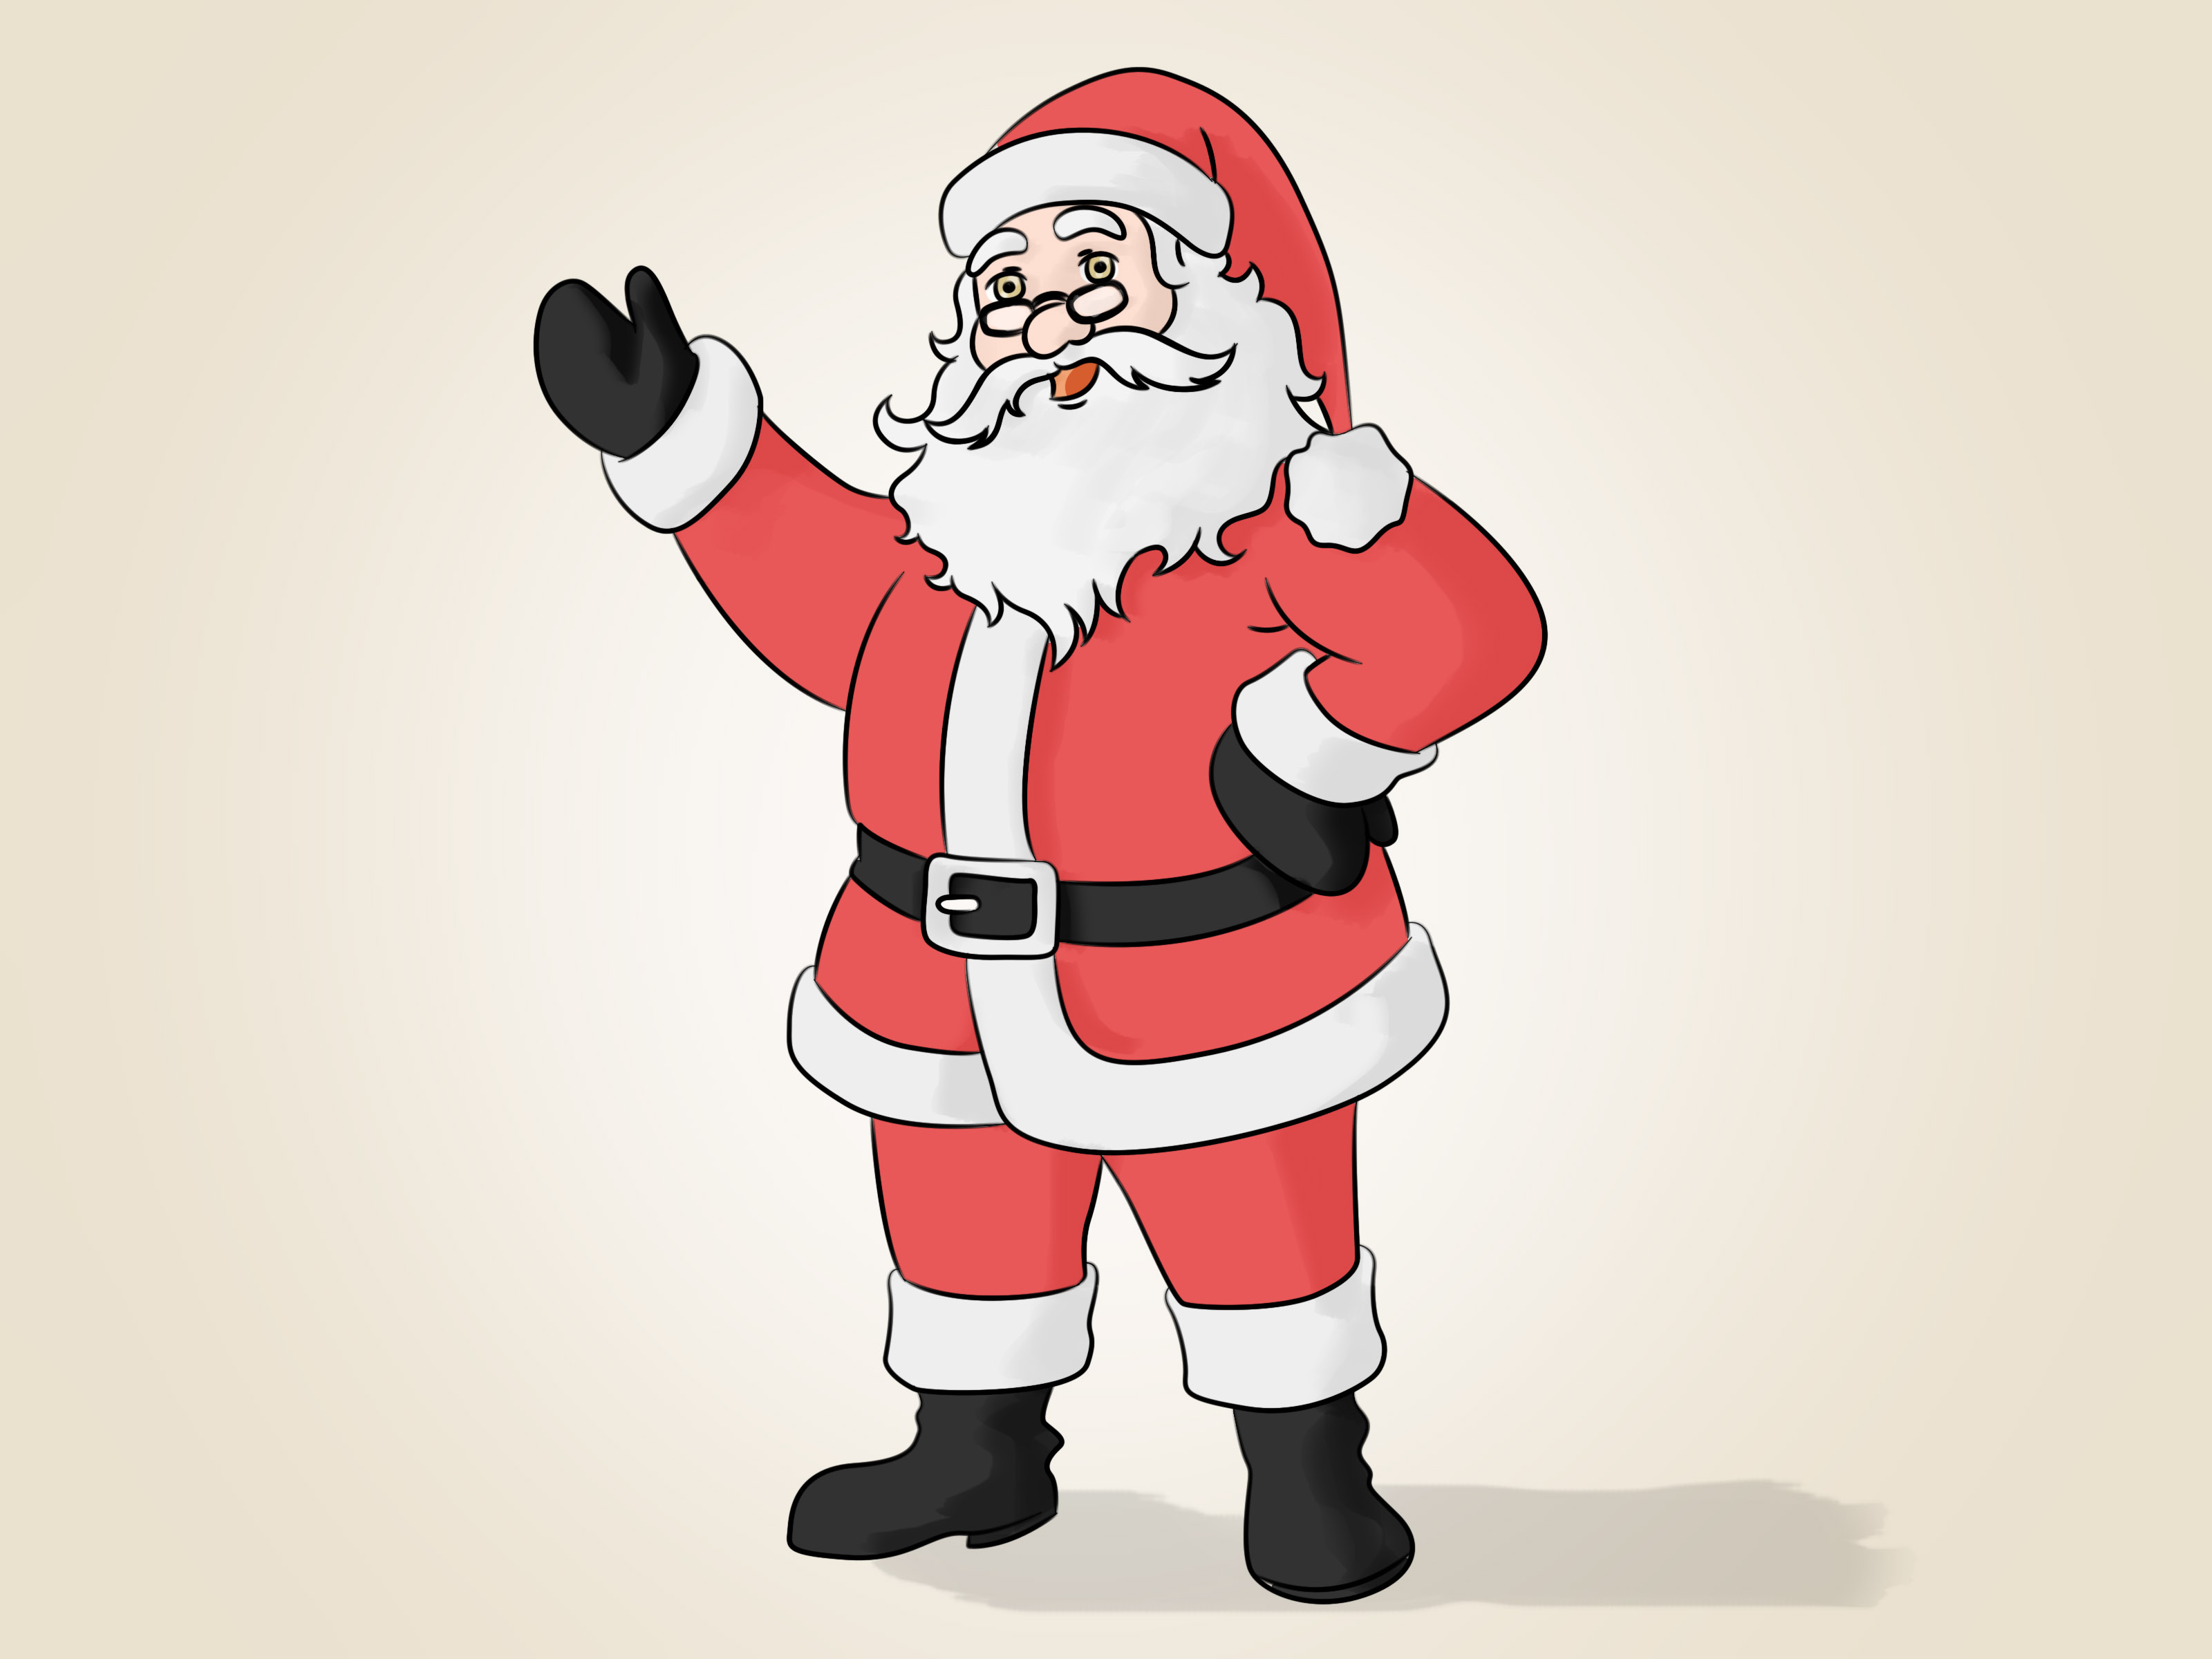 Drawn santa WikiHow 14 Pictures) Draw to